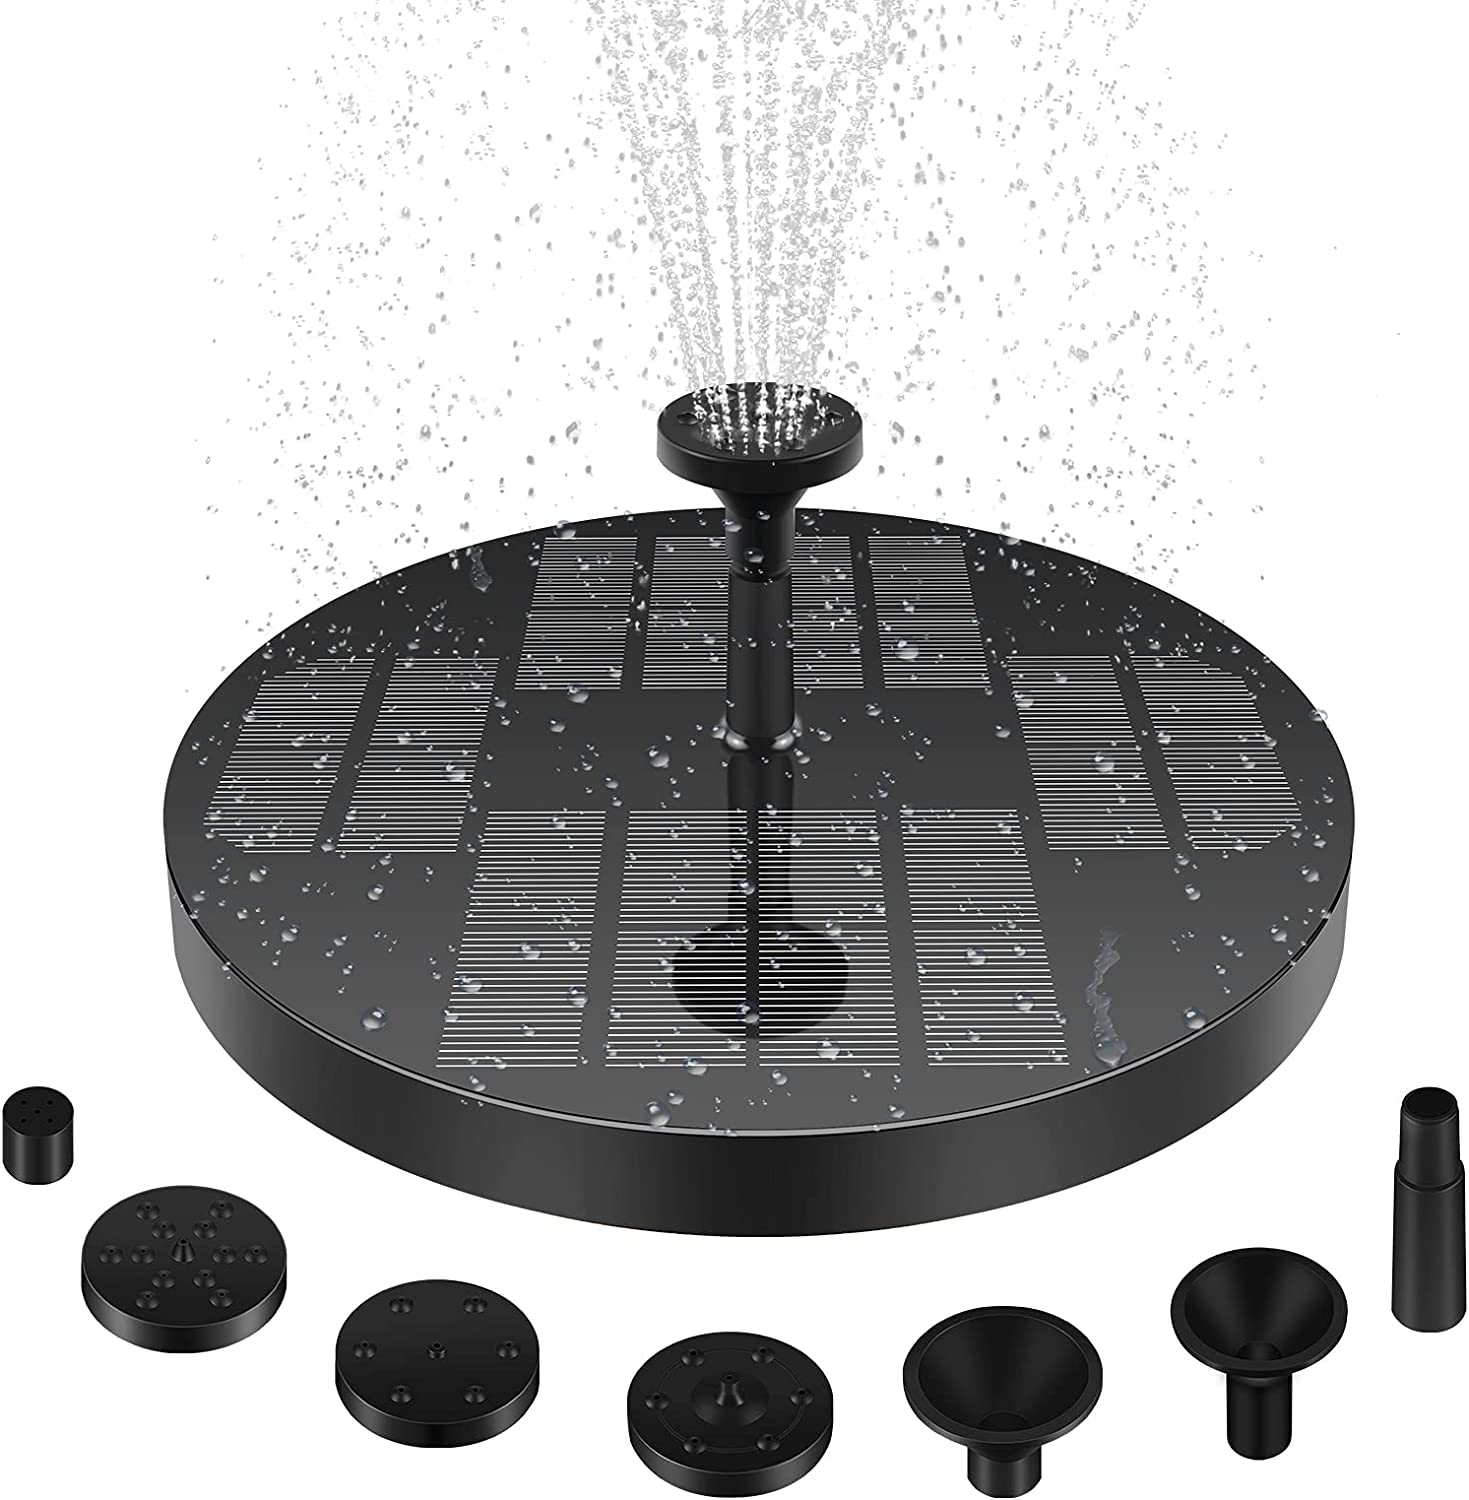 Solar Water Fountain Upgraded 3w Solar Water Pump with 4 Nozzles Solar Fountain Pump for Garden Decor, Bird Bath Pond Pool Fish Tank Patio Garden solar power heater Stable and Longer Working Time